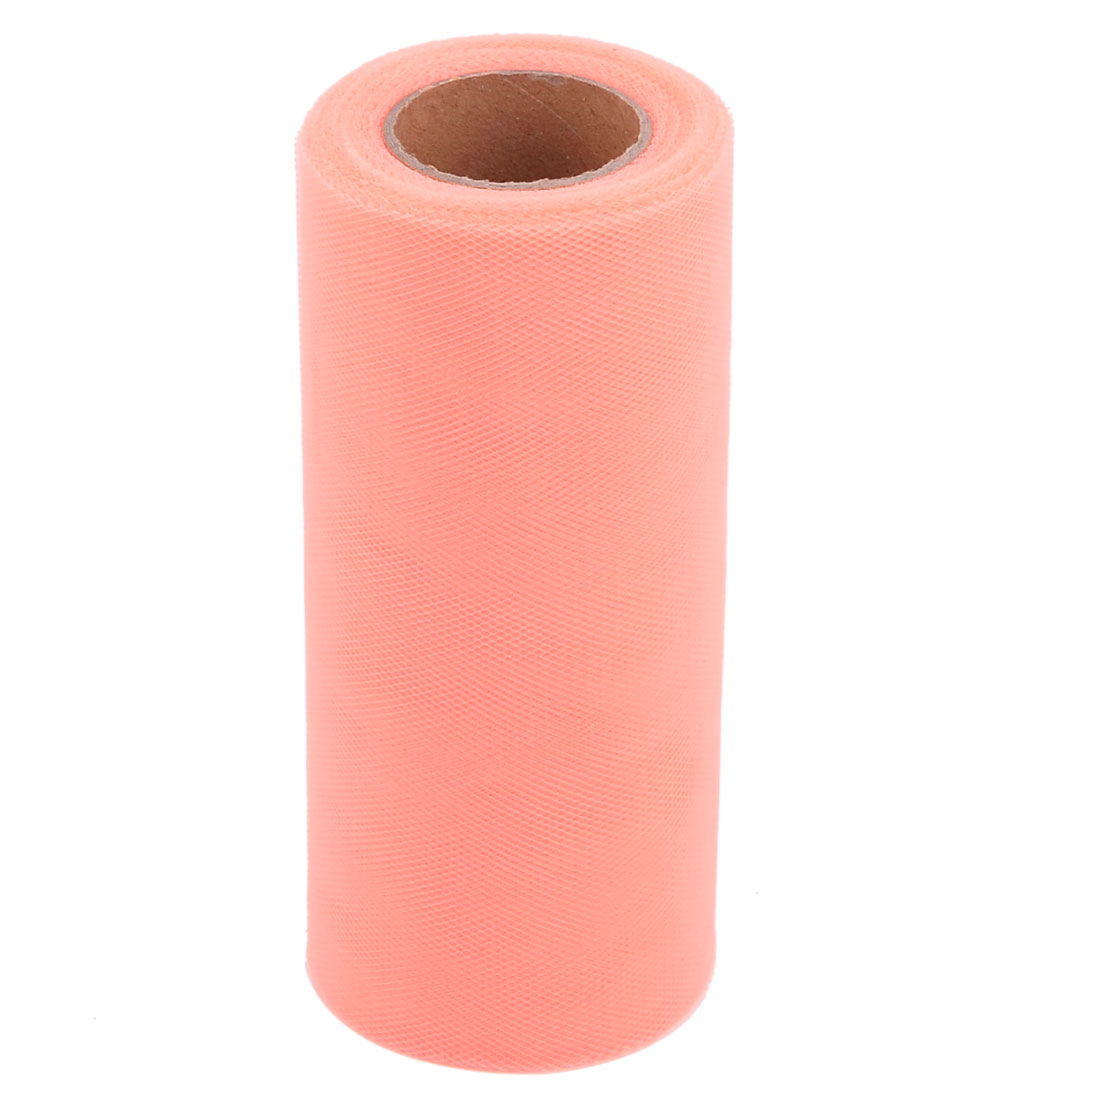 Banquet Polyester Craft Sewing Wedding Dress Tulle Spool Roll Coral Pink 6 Inch x 25 Yards